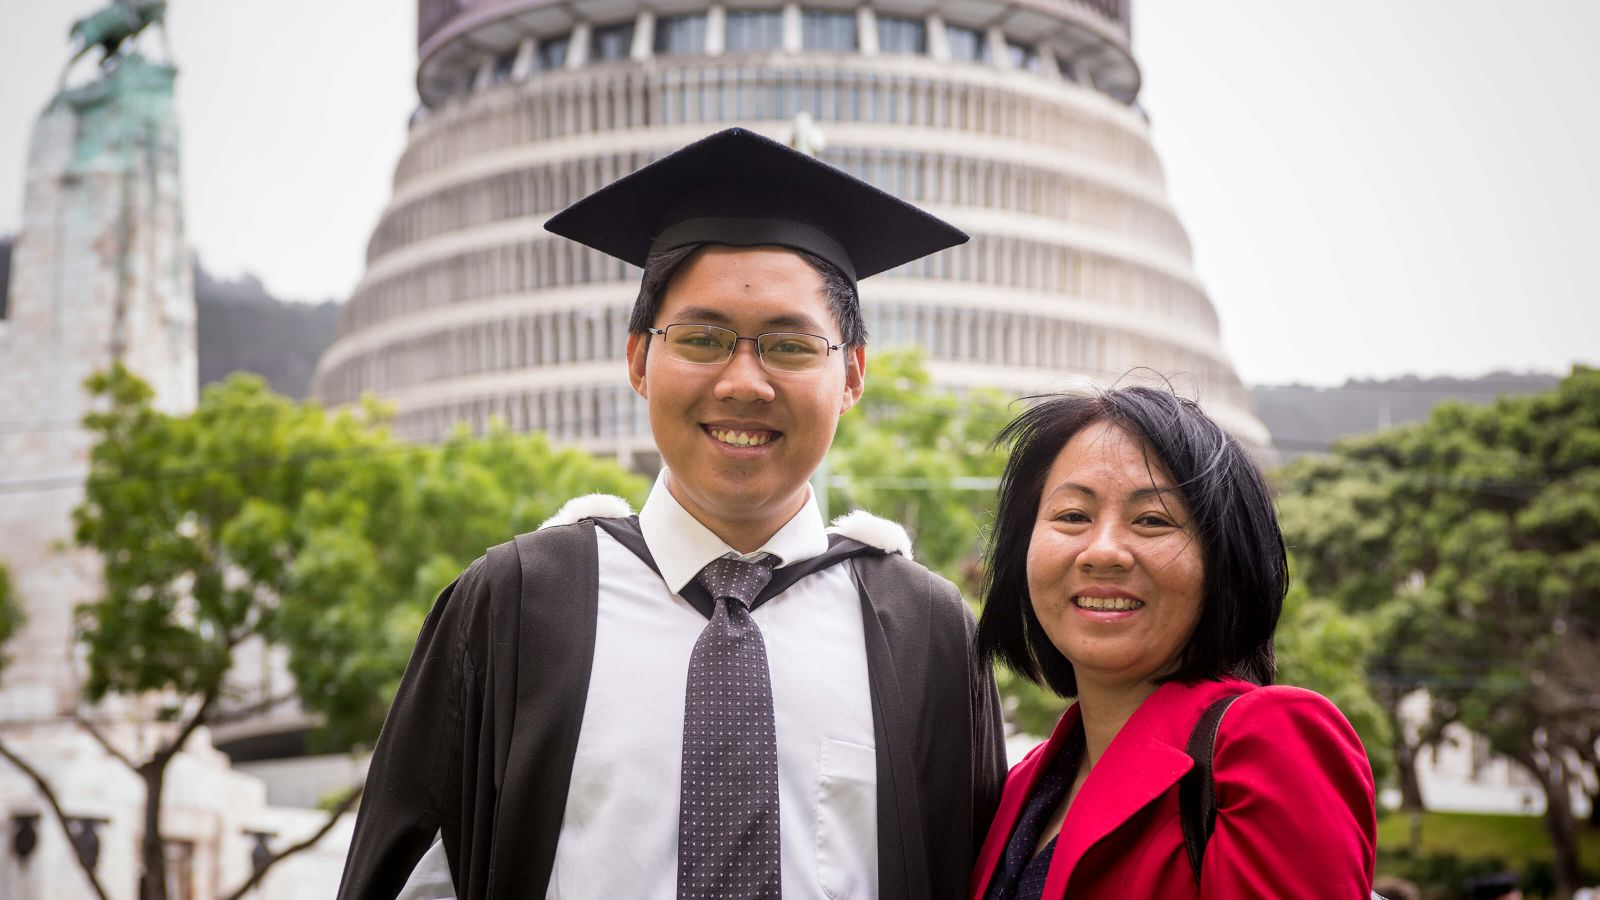 Male student with family member in graduation gown in front of parliament Beehive.